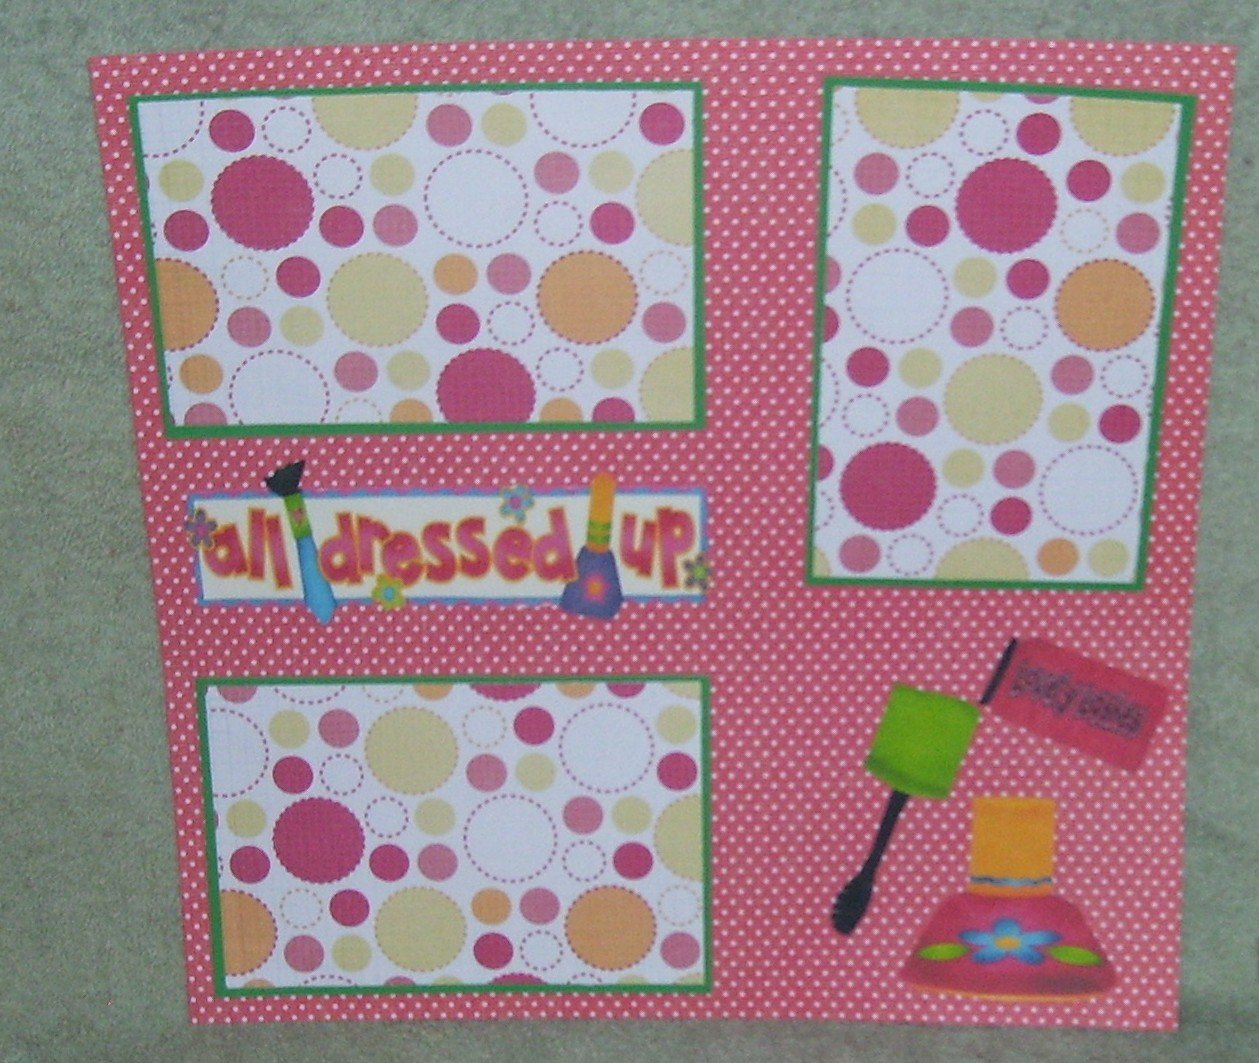 """""""All Dressed Up Nail Polish""""-Premade Scrapbook Page 12x12"""